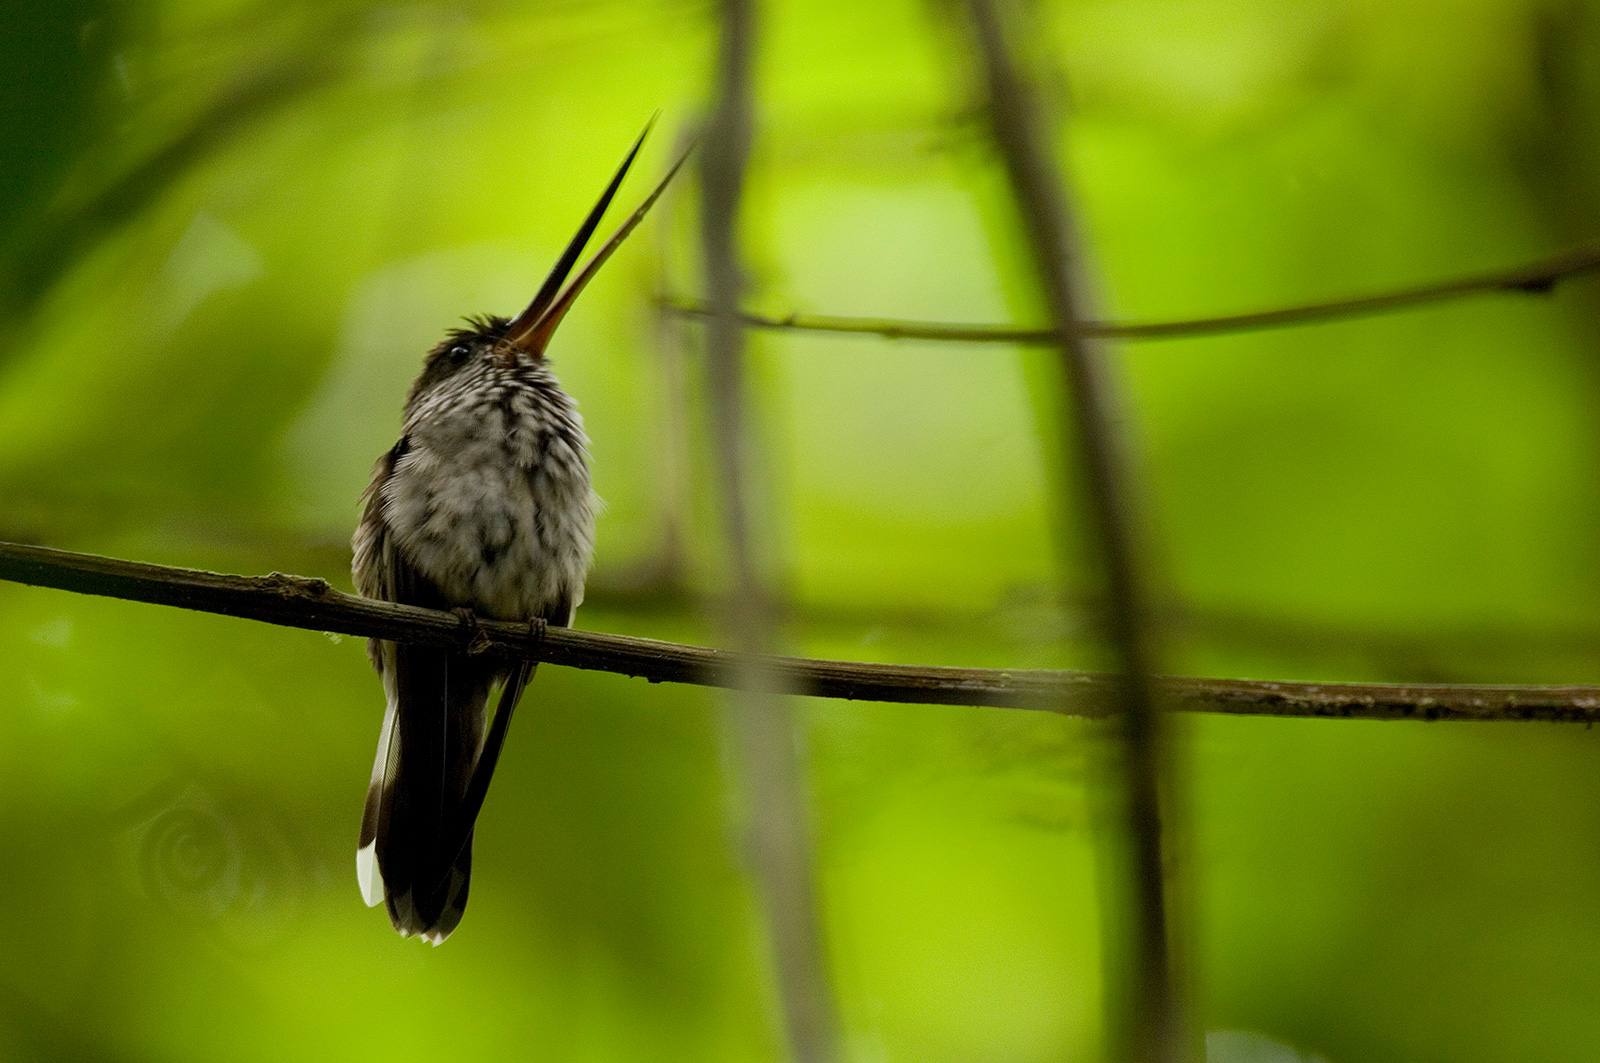 A small bird with a very long, slender beak perched on a branch